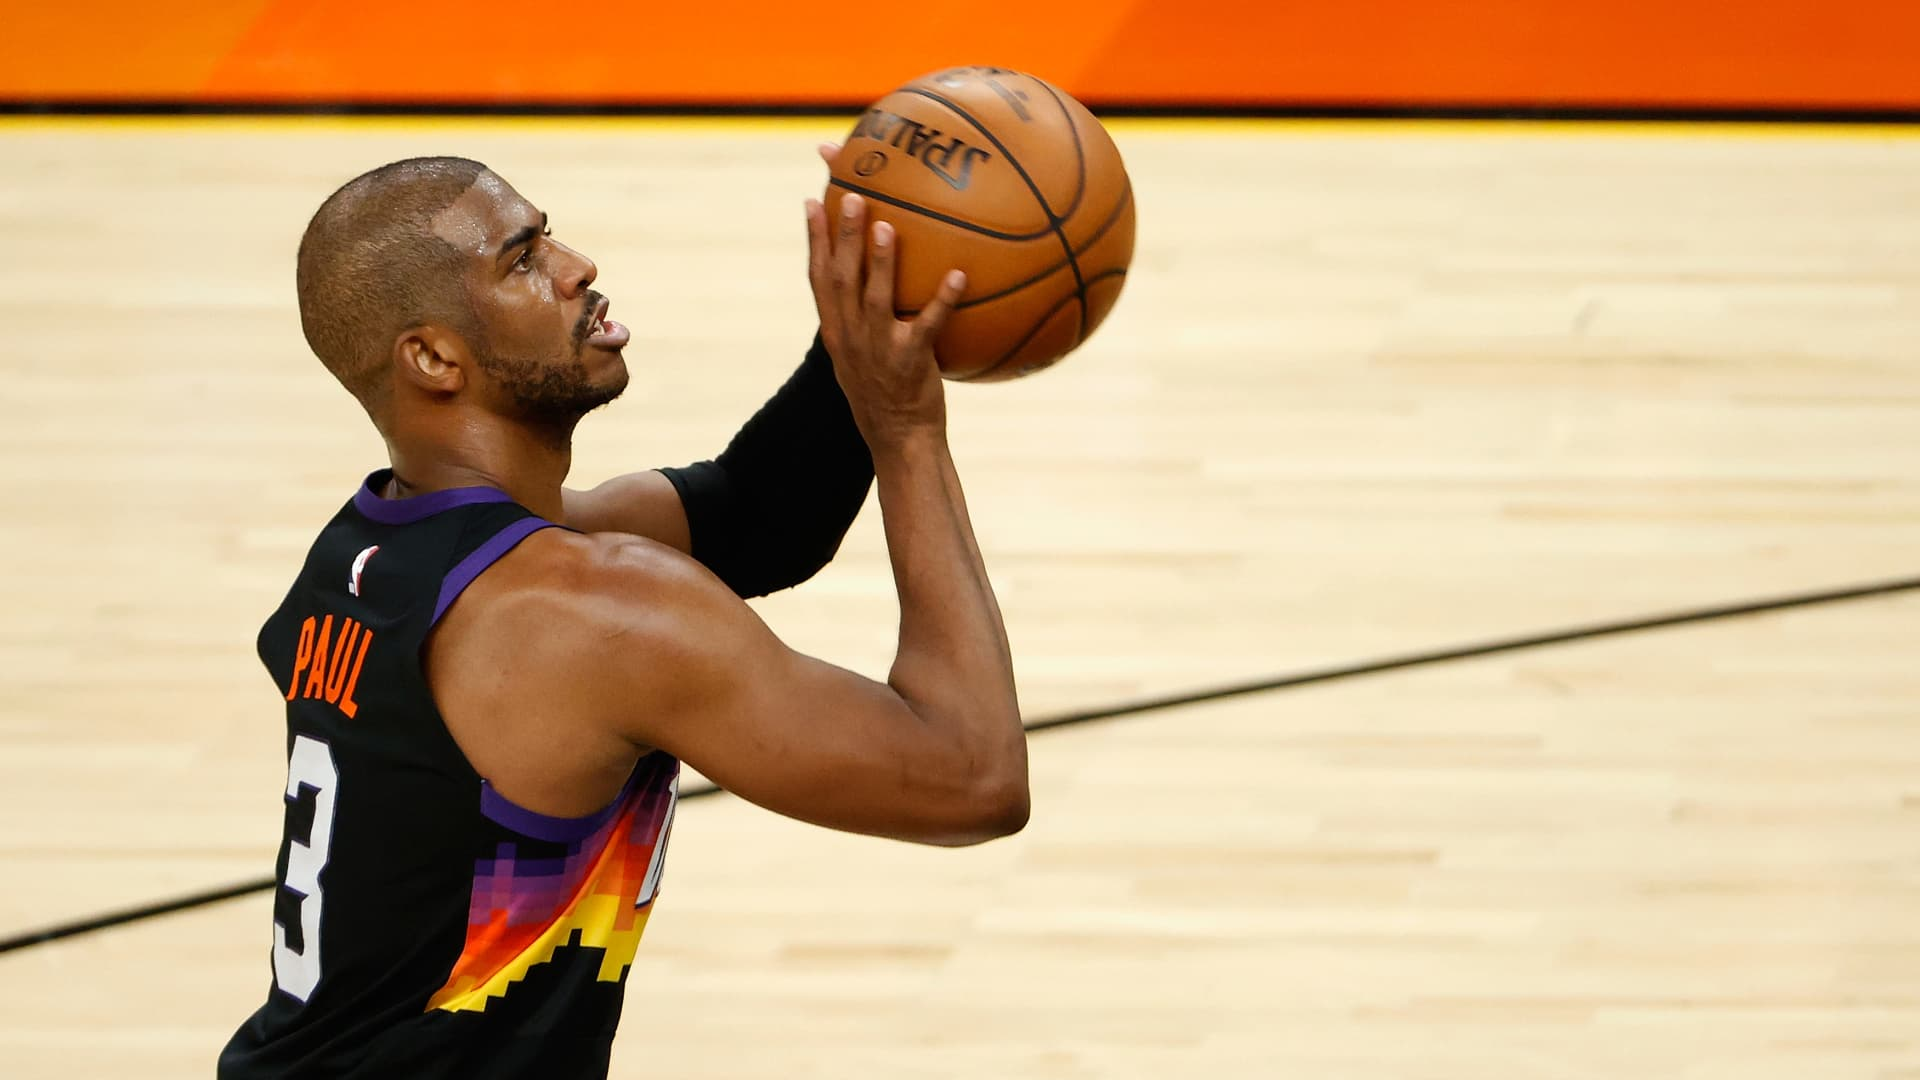 Chris Paul #3 of the Phoenix Suns shoots a free-throw shot against the LA Clippers during the NBA game at Phoenix Suns Arena on April 28, 2021 in Phoenix, Arizona.